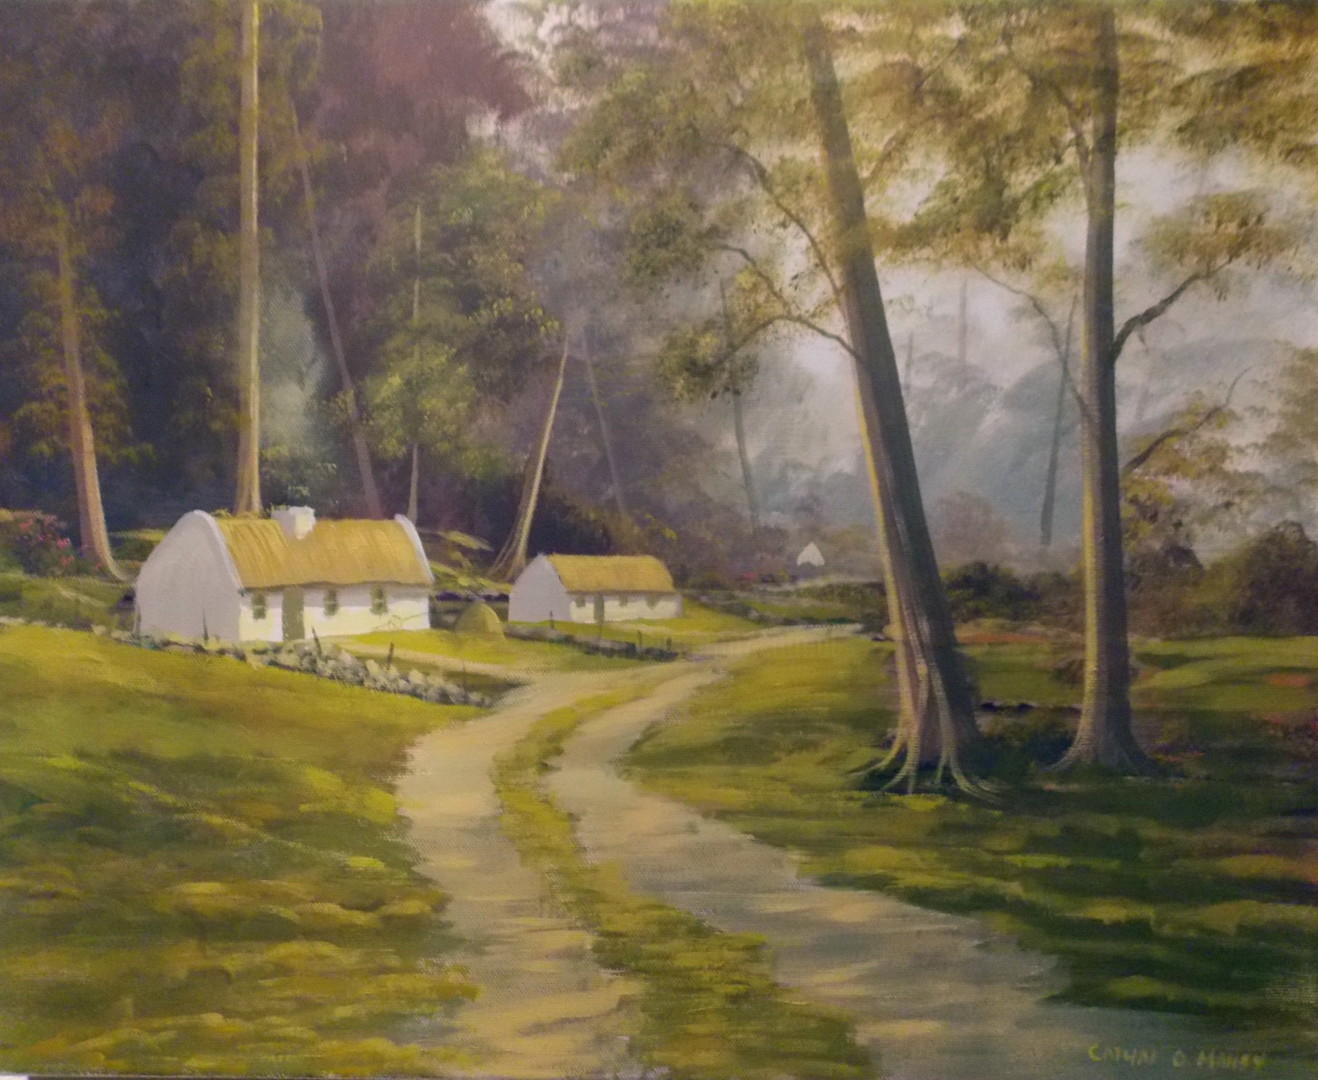 Cathal O Malley - forest cottages